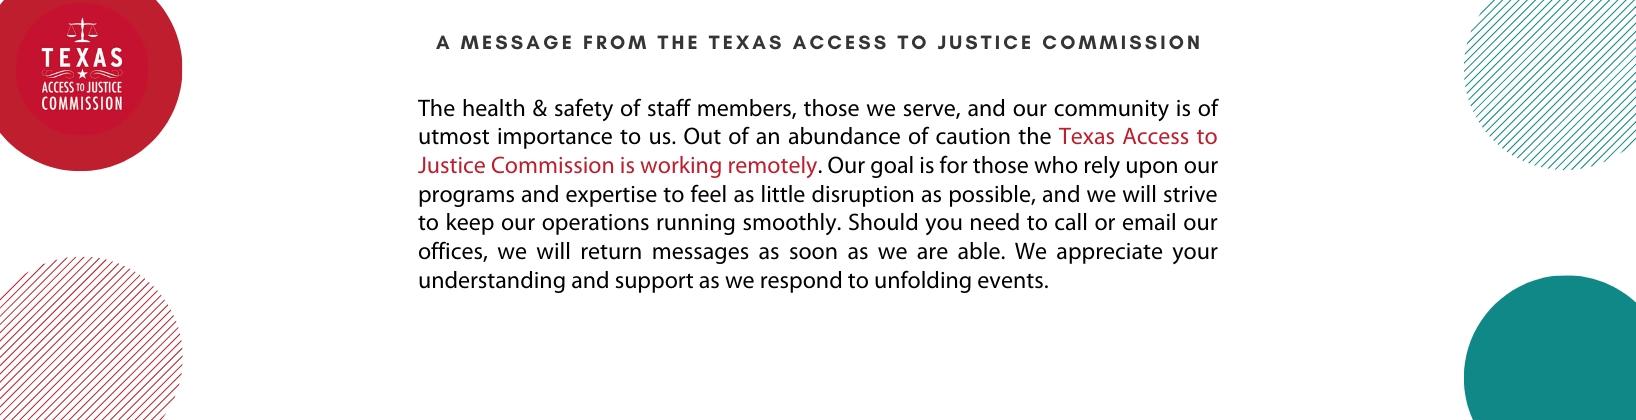 A Message from the Texas Access to Justice Commission about working remotely during the Coronavirus Outbreak